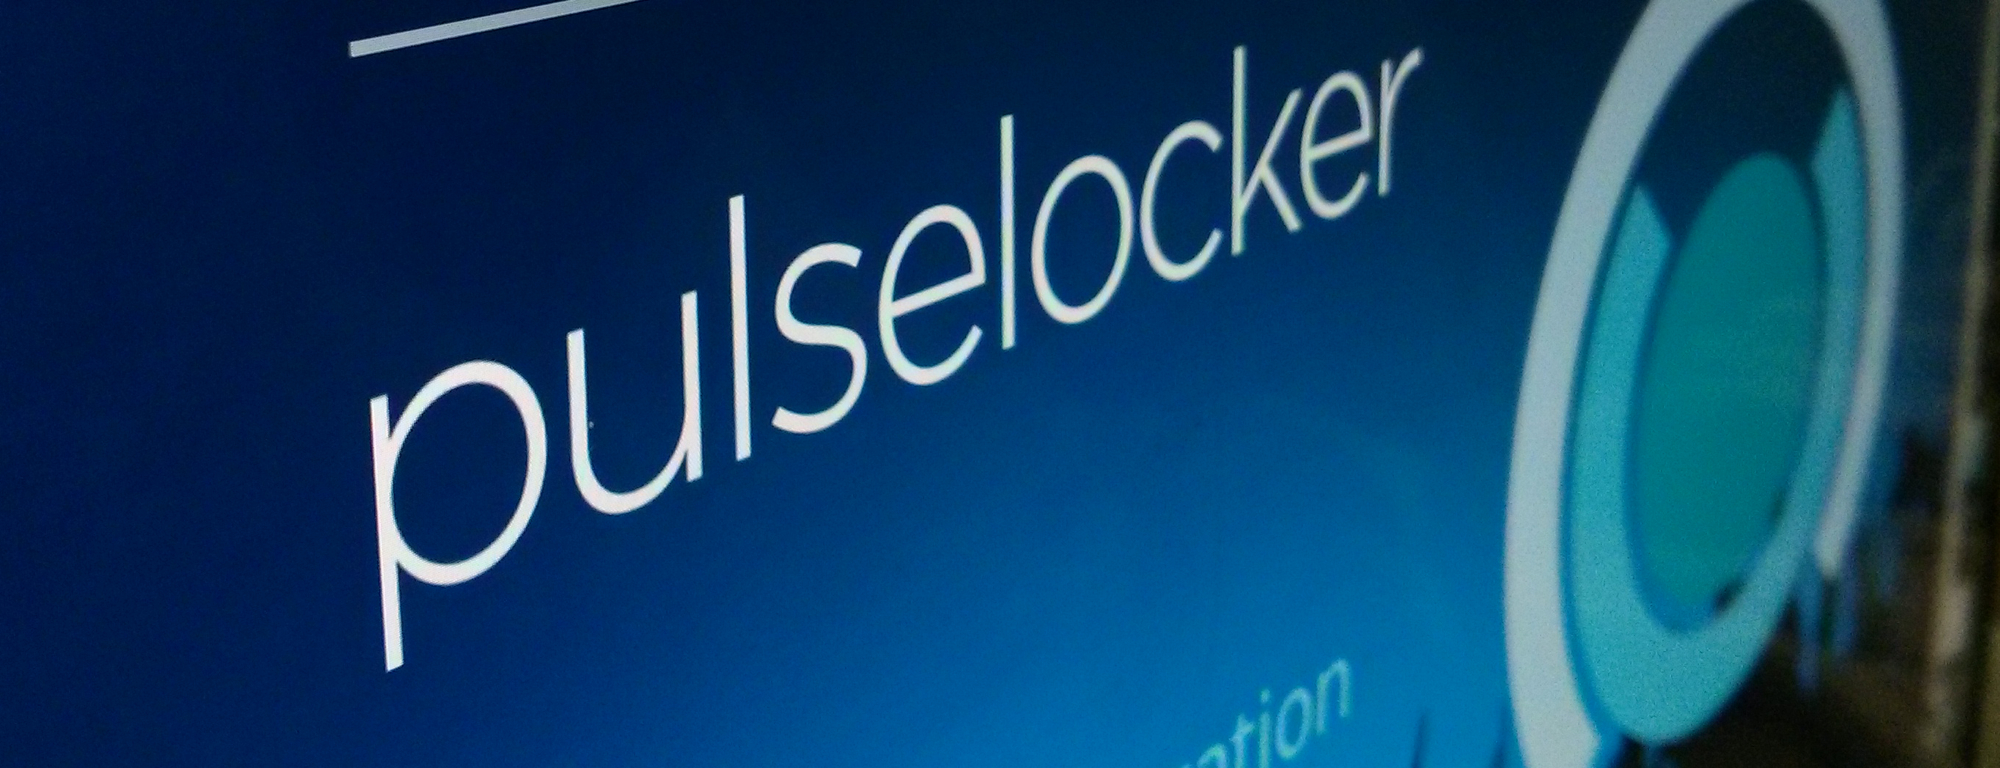 Pulselocker Relaunches its 'Spotify for DJs' Service on the Web